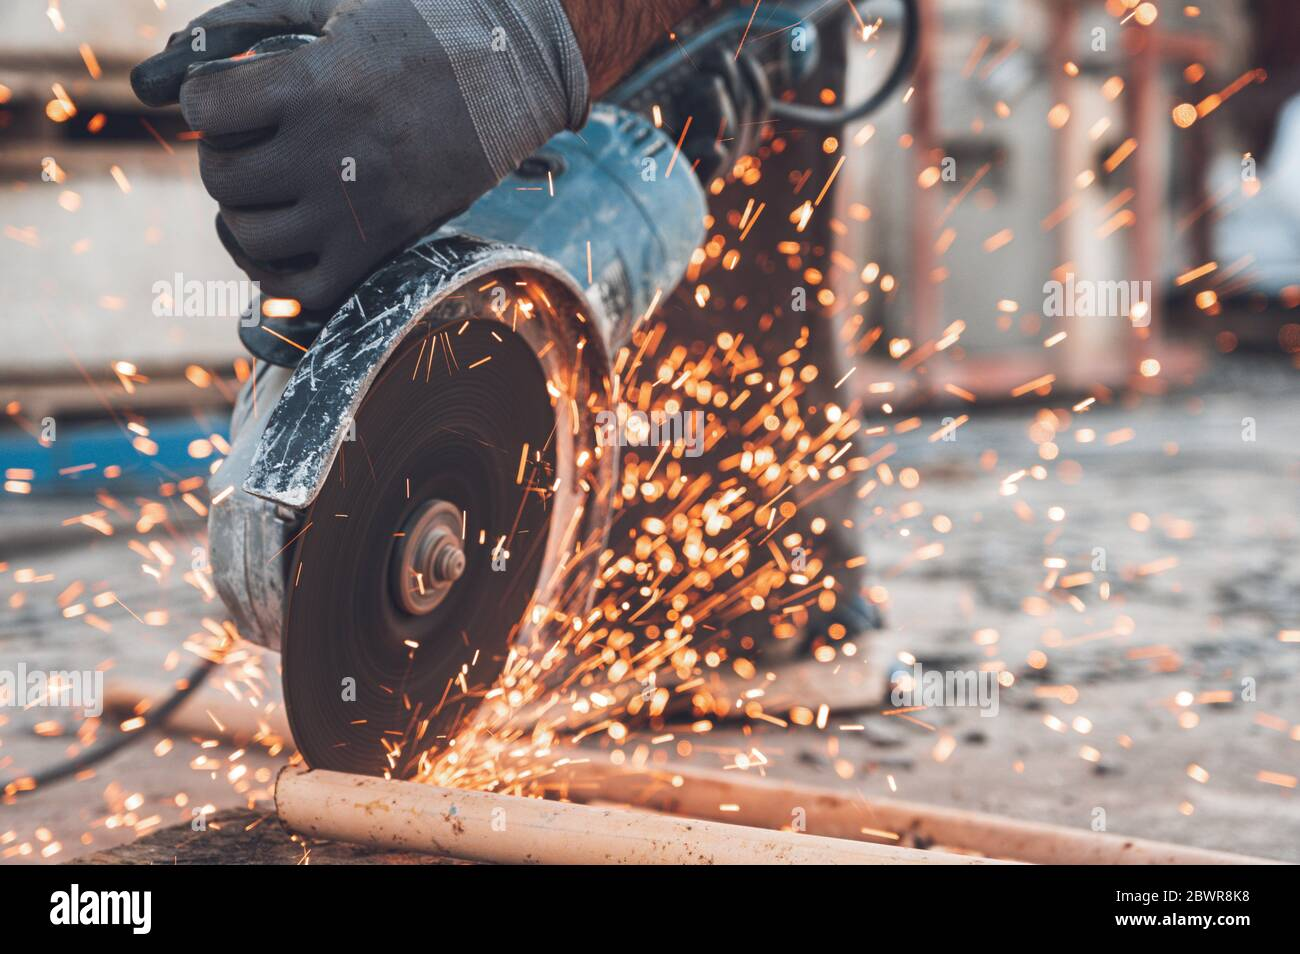 Construction worker using Angle Grinder cutting Metal at construction site. Stock Photo